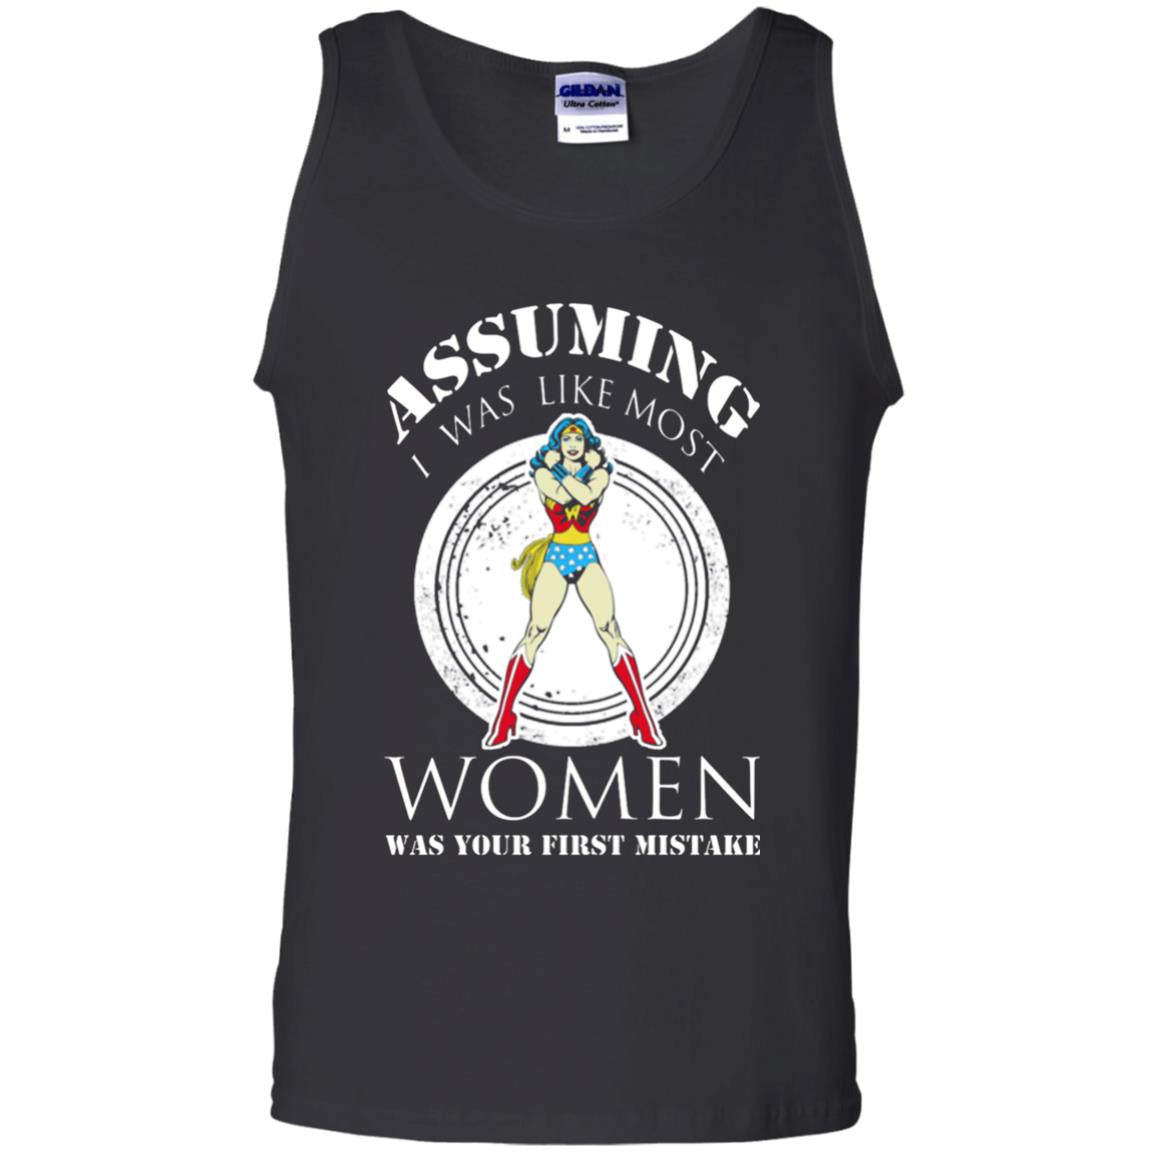 Assuming I Was Like Most Women Was Your First Mistake Tanktop  Yoga Shirt